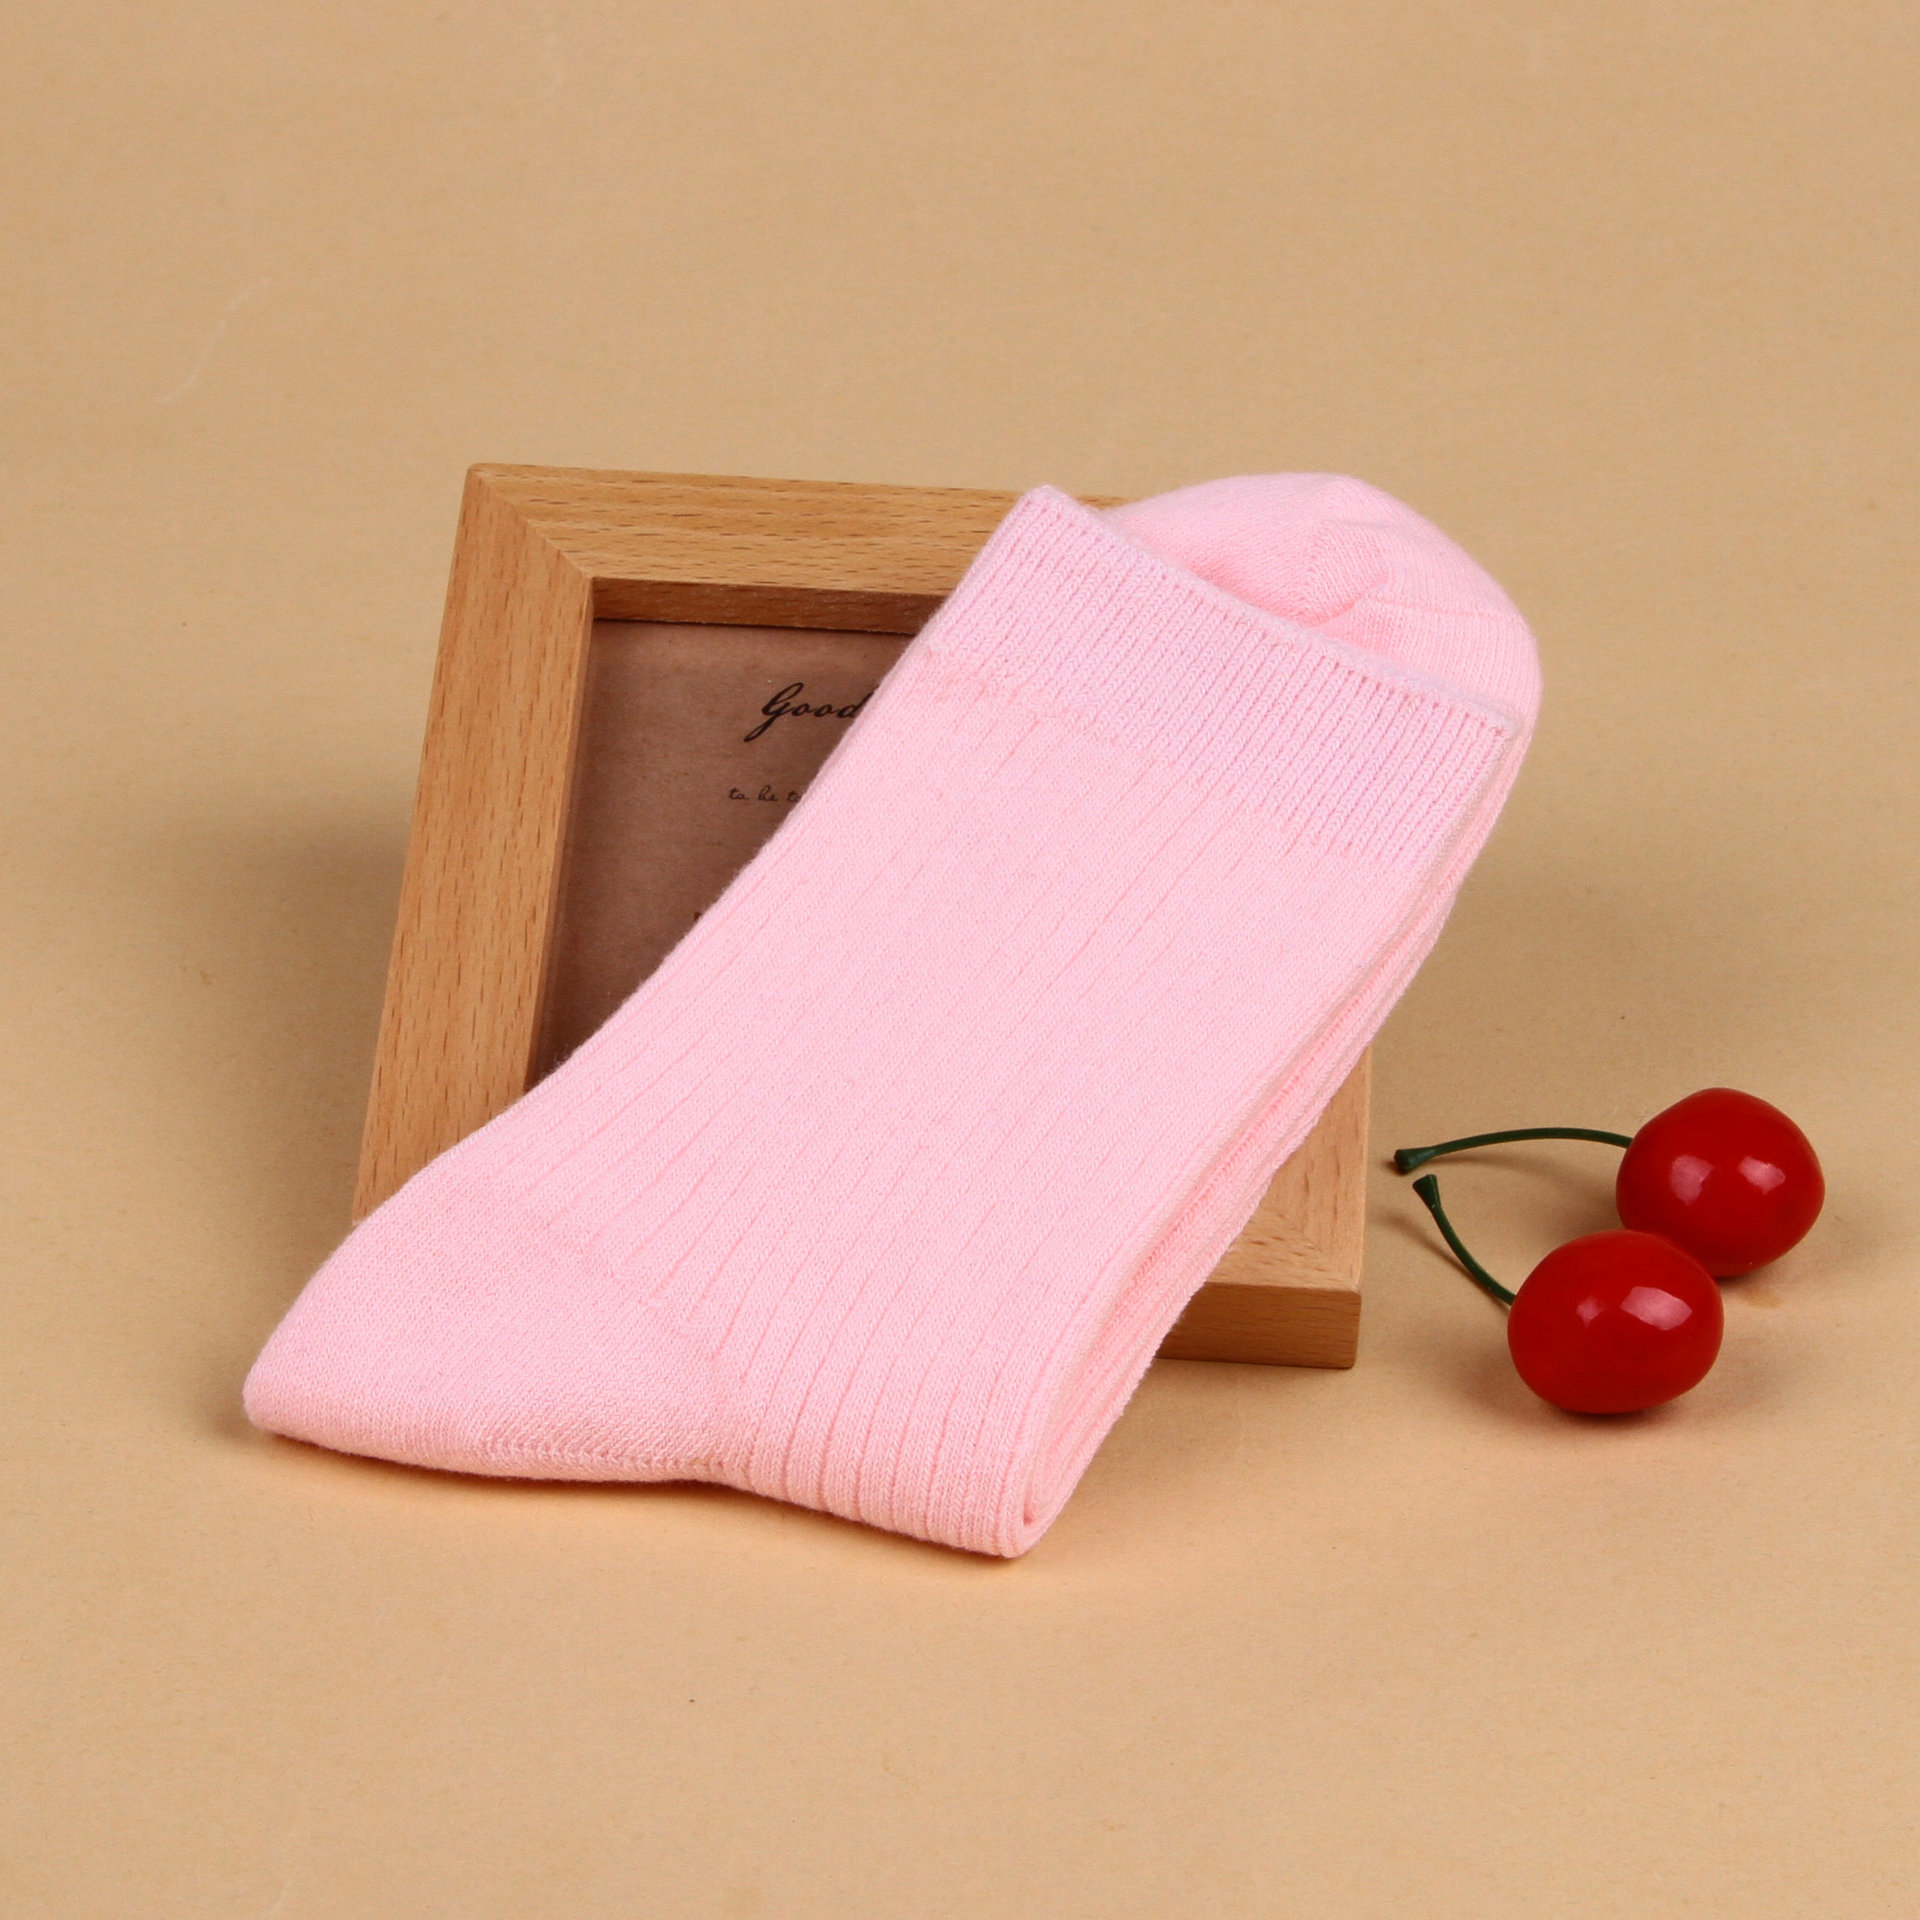 Comfy Cotton Socks for Cold Weather